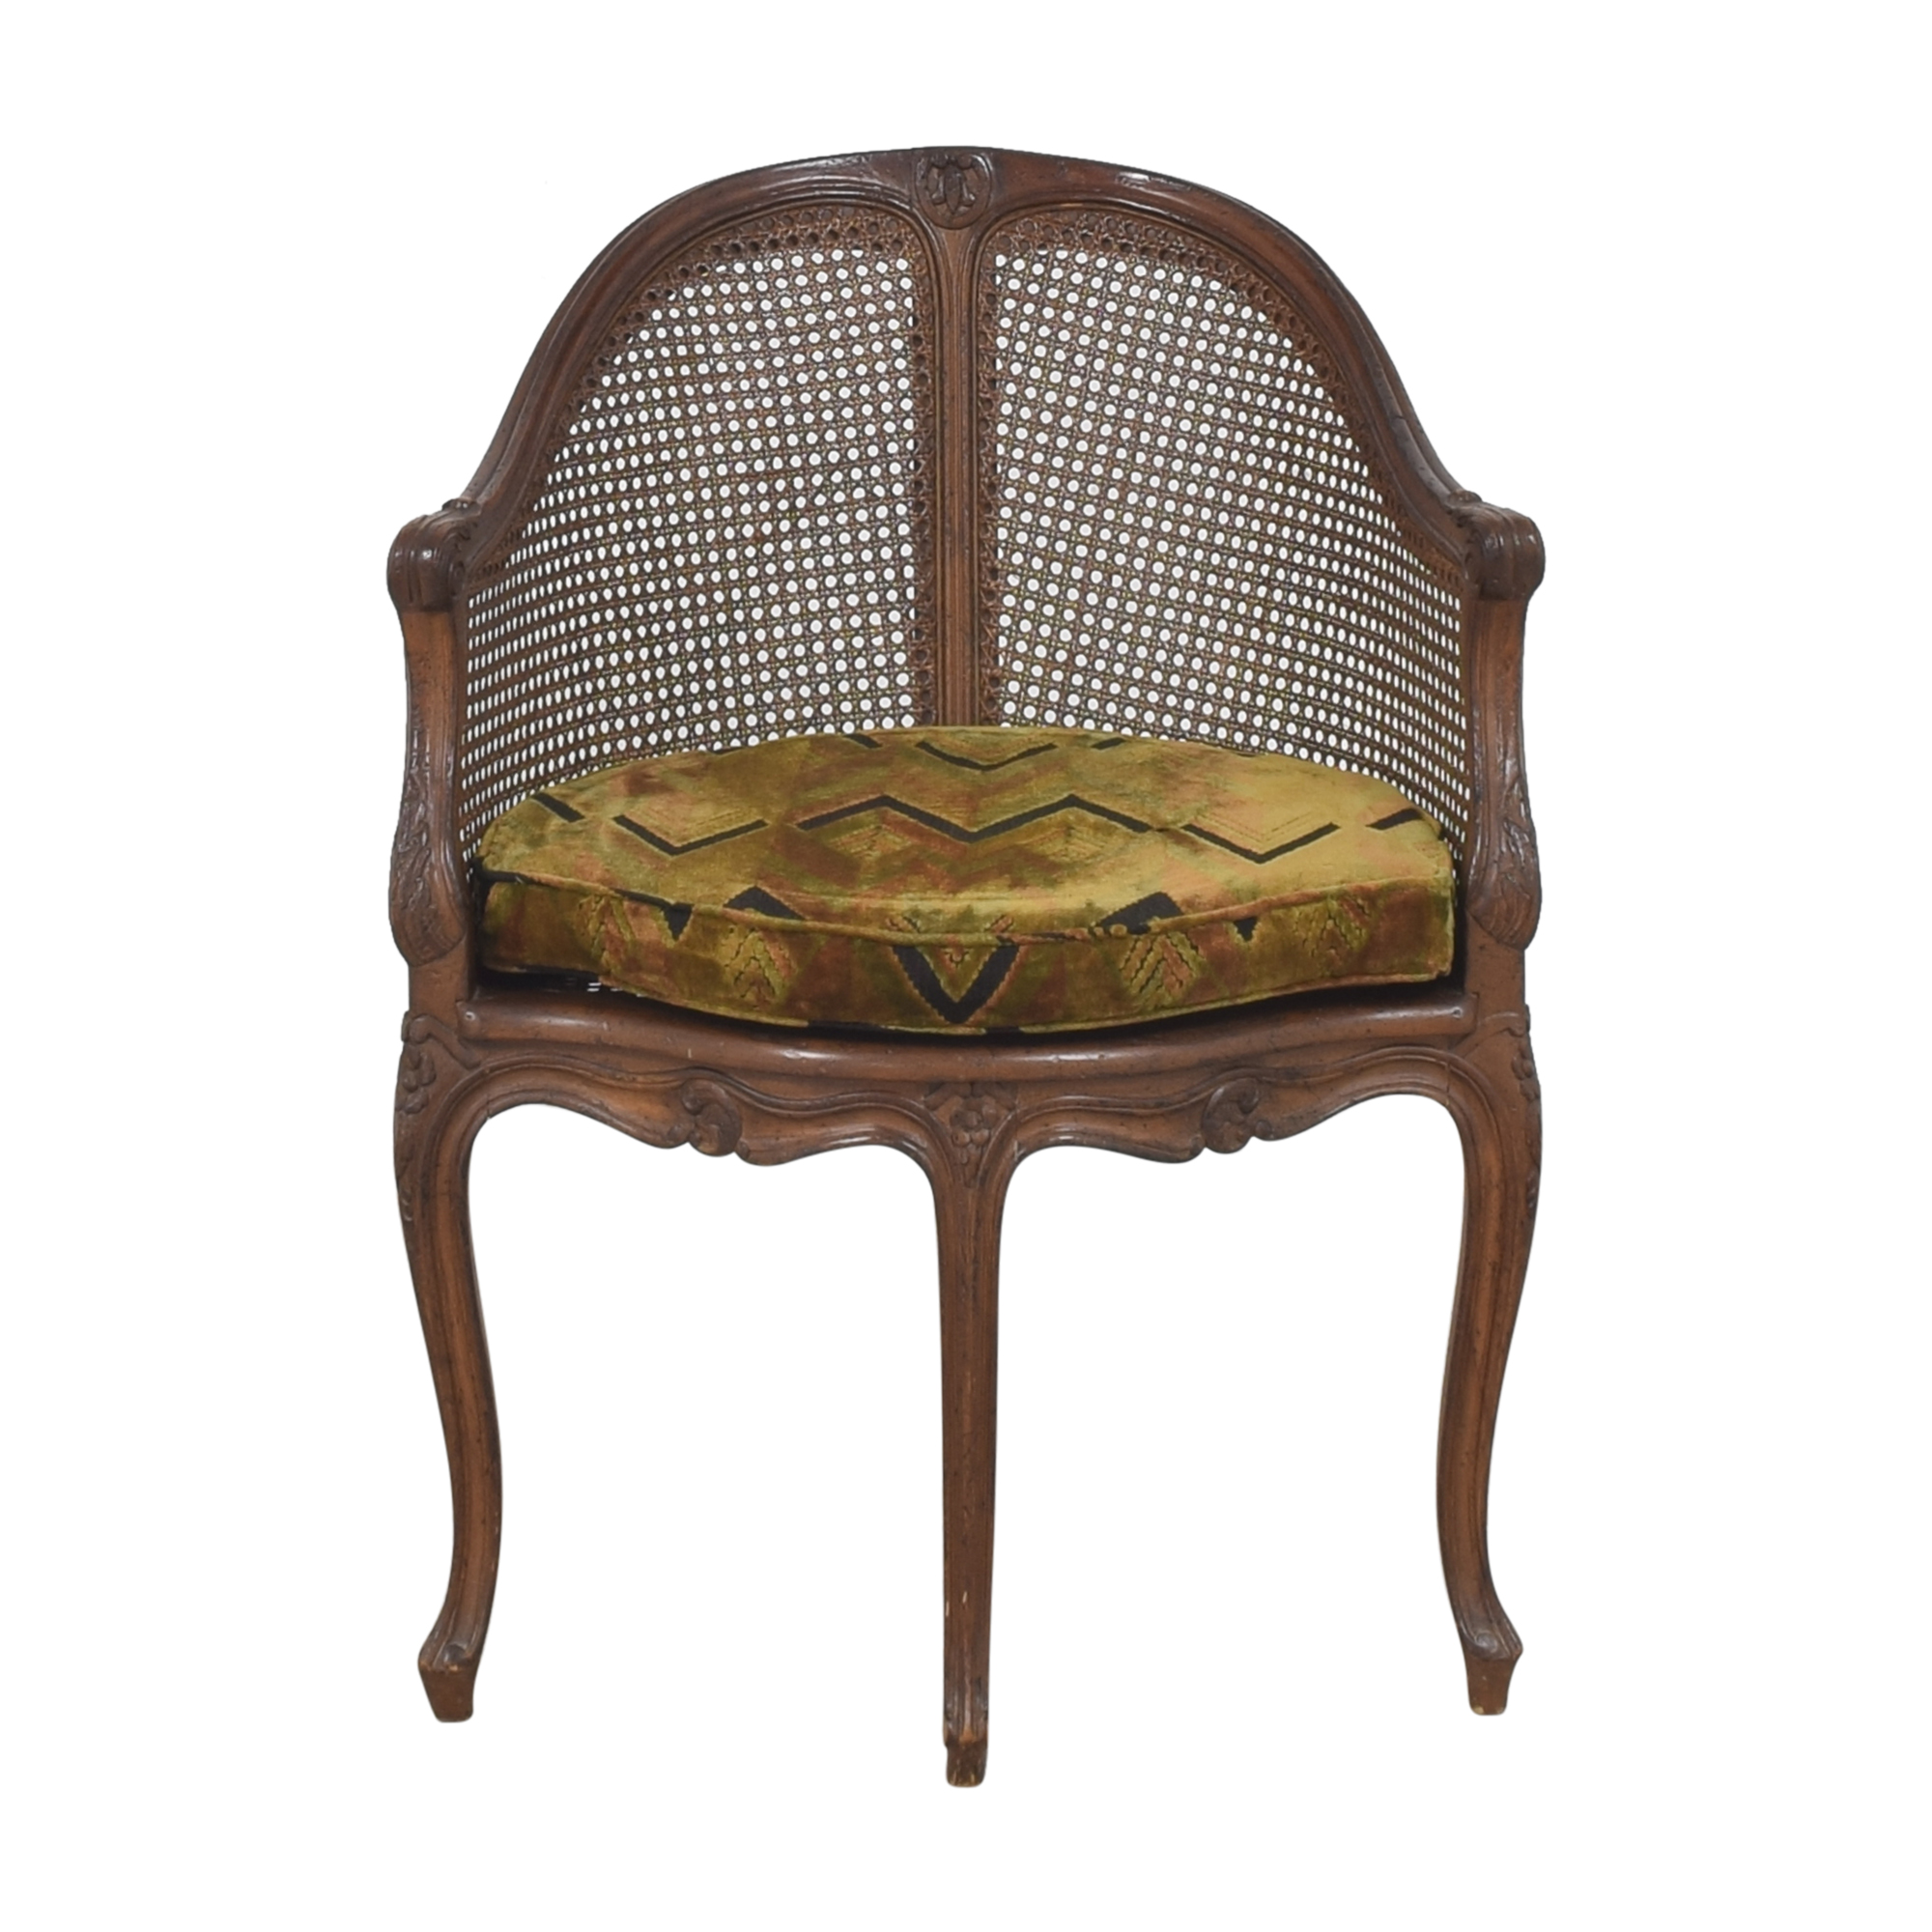 Vintage French-Style Corner Chair dimensions